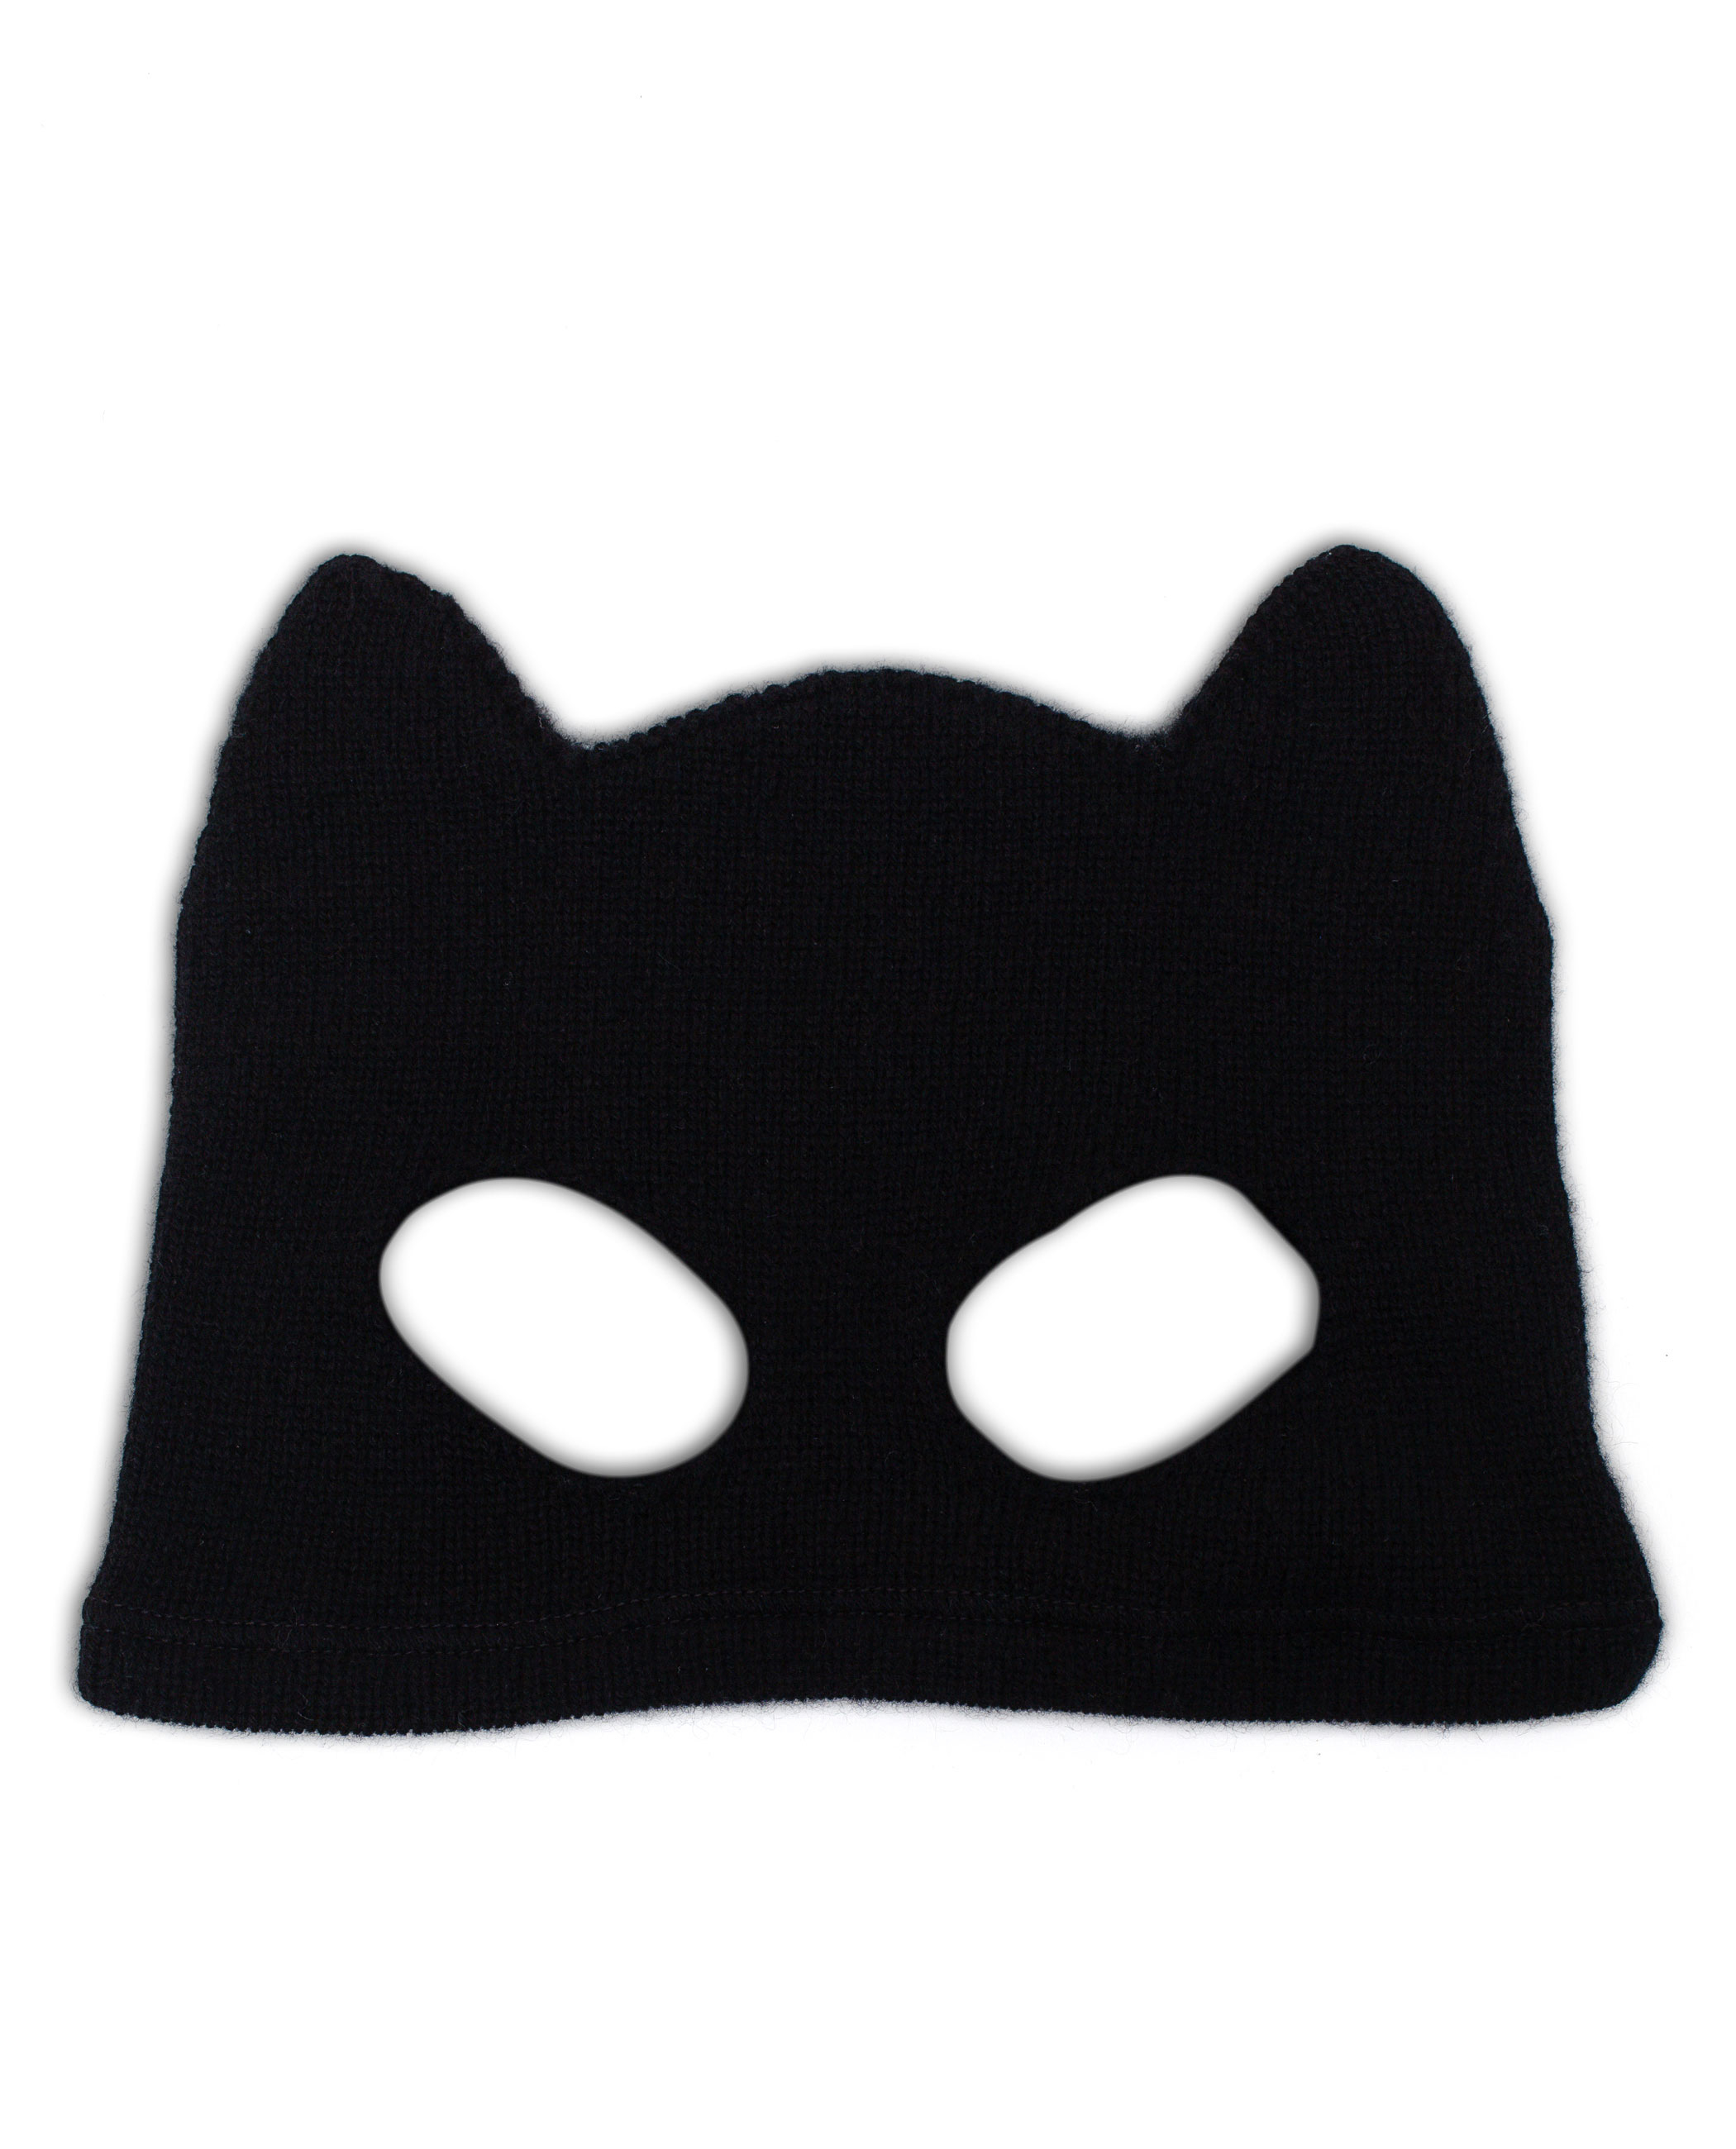 937b65f2658 Silver Spoon Attire Cashmere Cat Mask in Black - Lyst